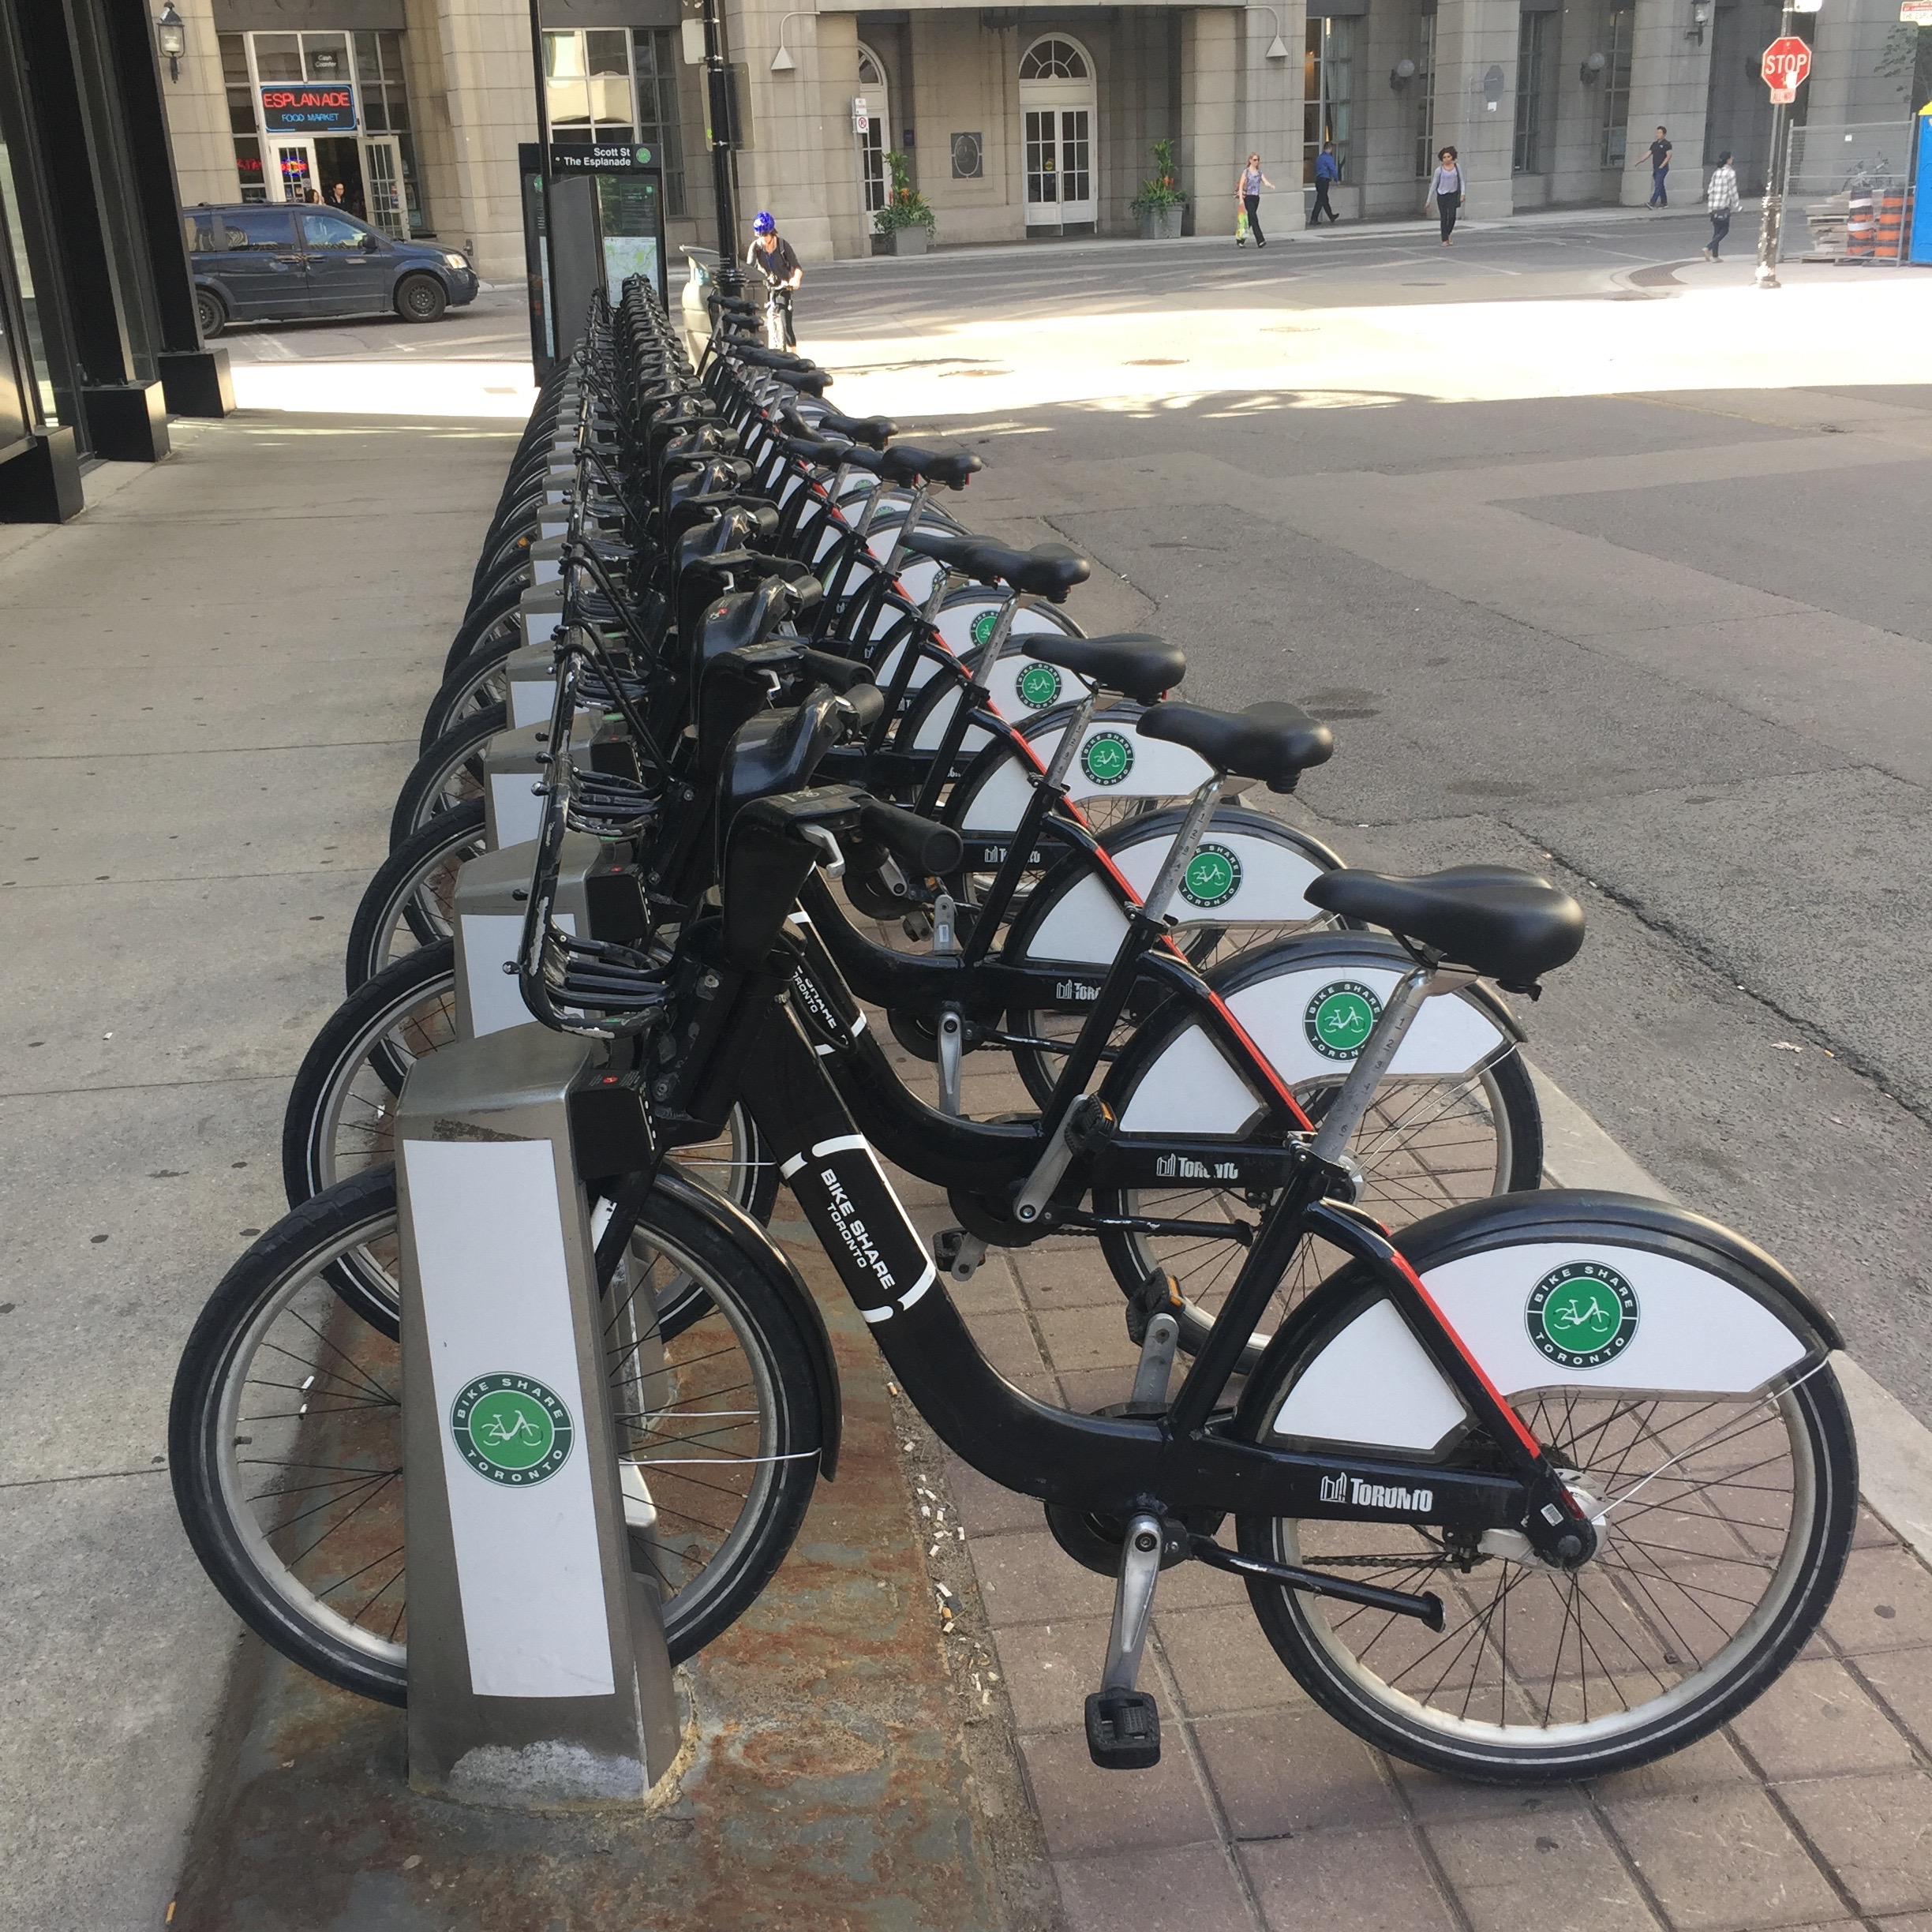 A full Toronto Bike Share dock near The Esplanade.